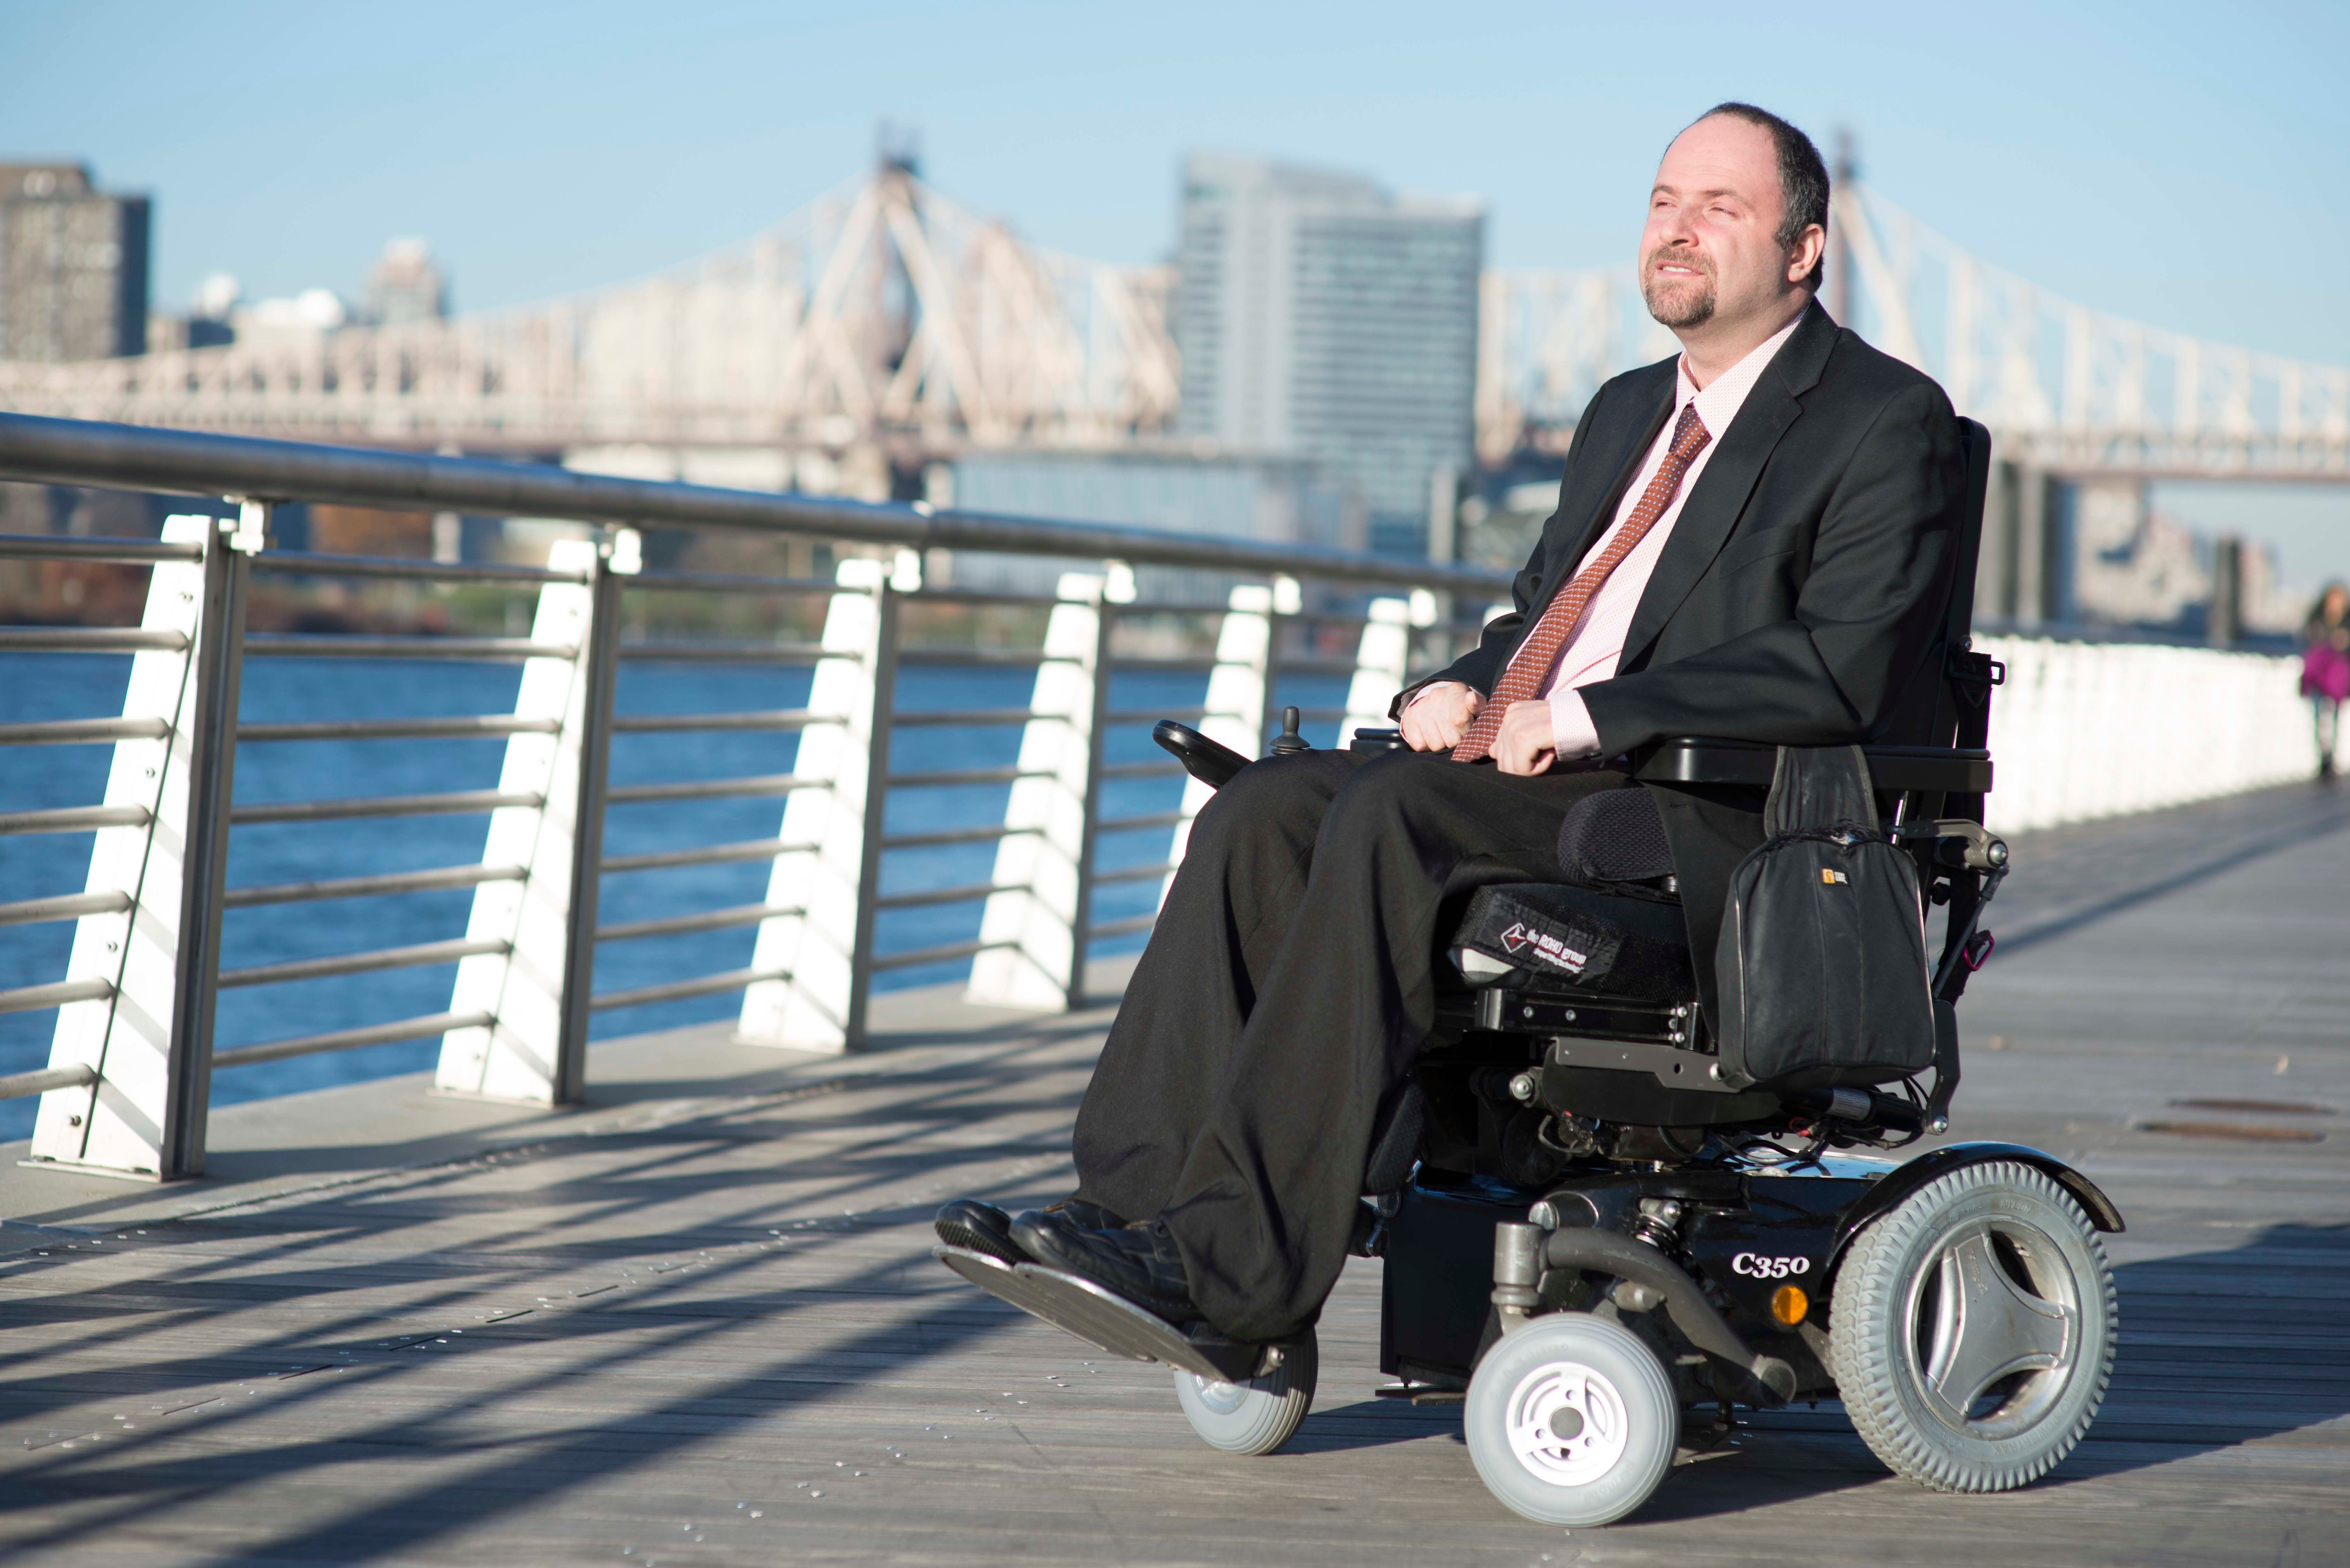 Alex Elegudin is tasked with making the New York City subway work better for people with disabilities